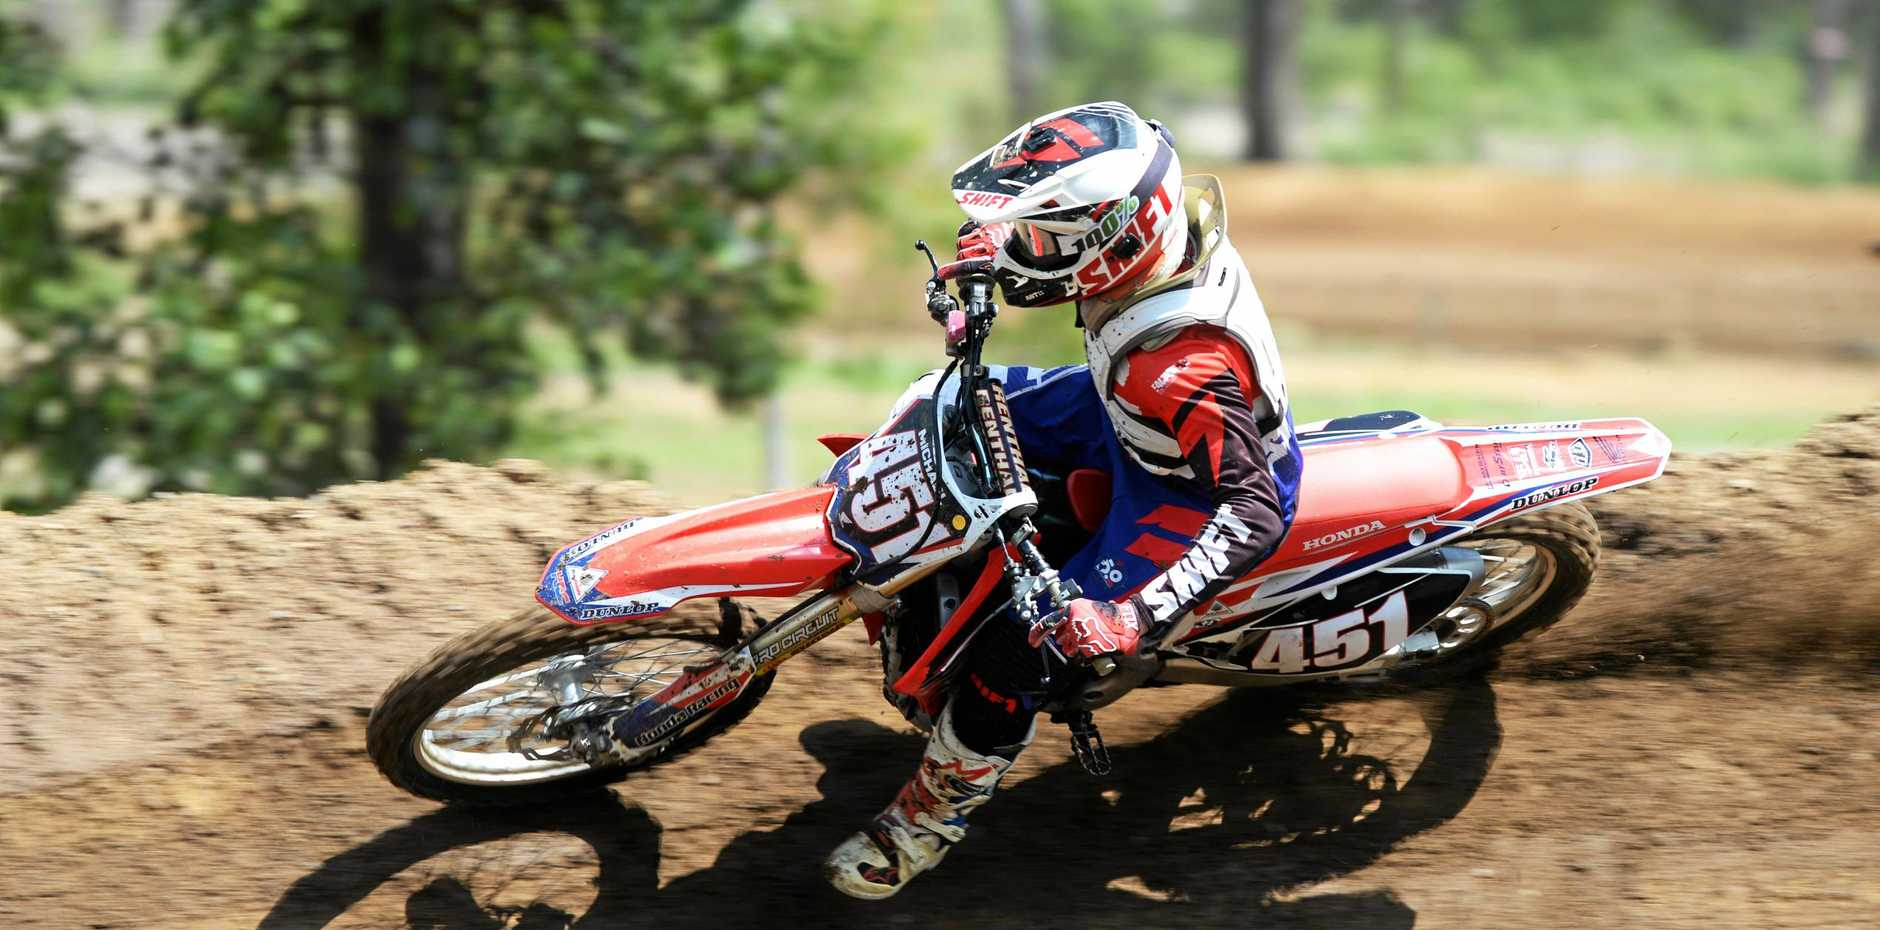 The State Government will give a proposed dirt bike track $150,000 if it gets approval from the Toowoomba Regional Council.